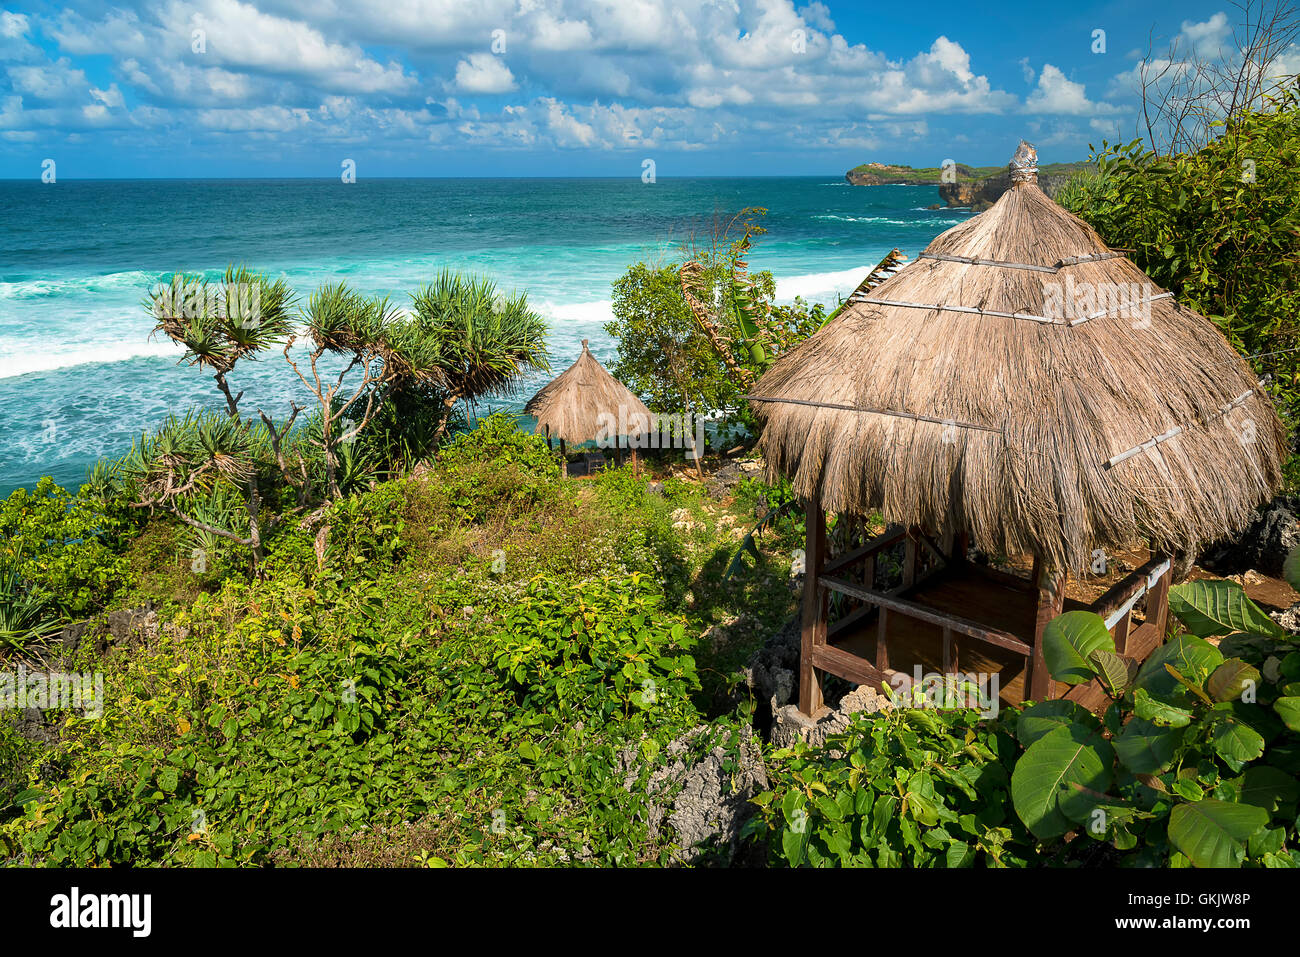 Wooden gazebo on the indonesian beach Pantai Baron, Jawa, Indonesia - Stock Image